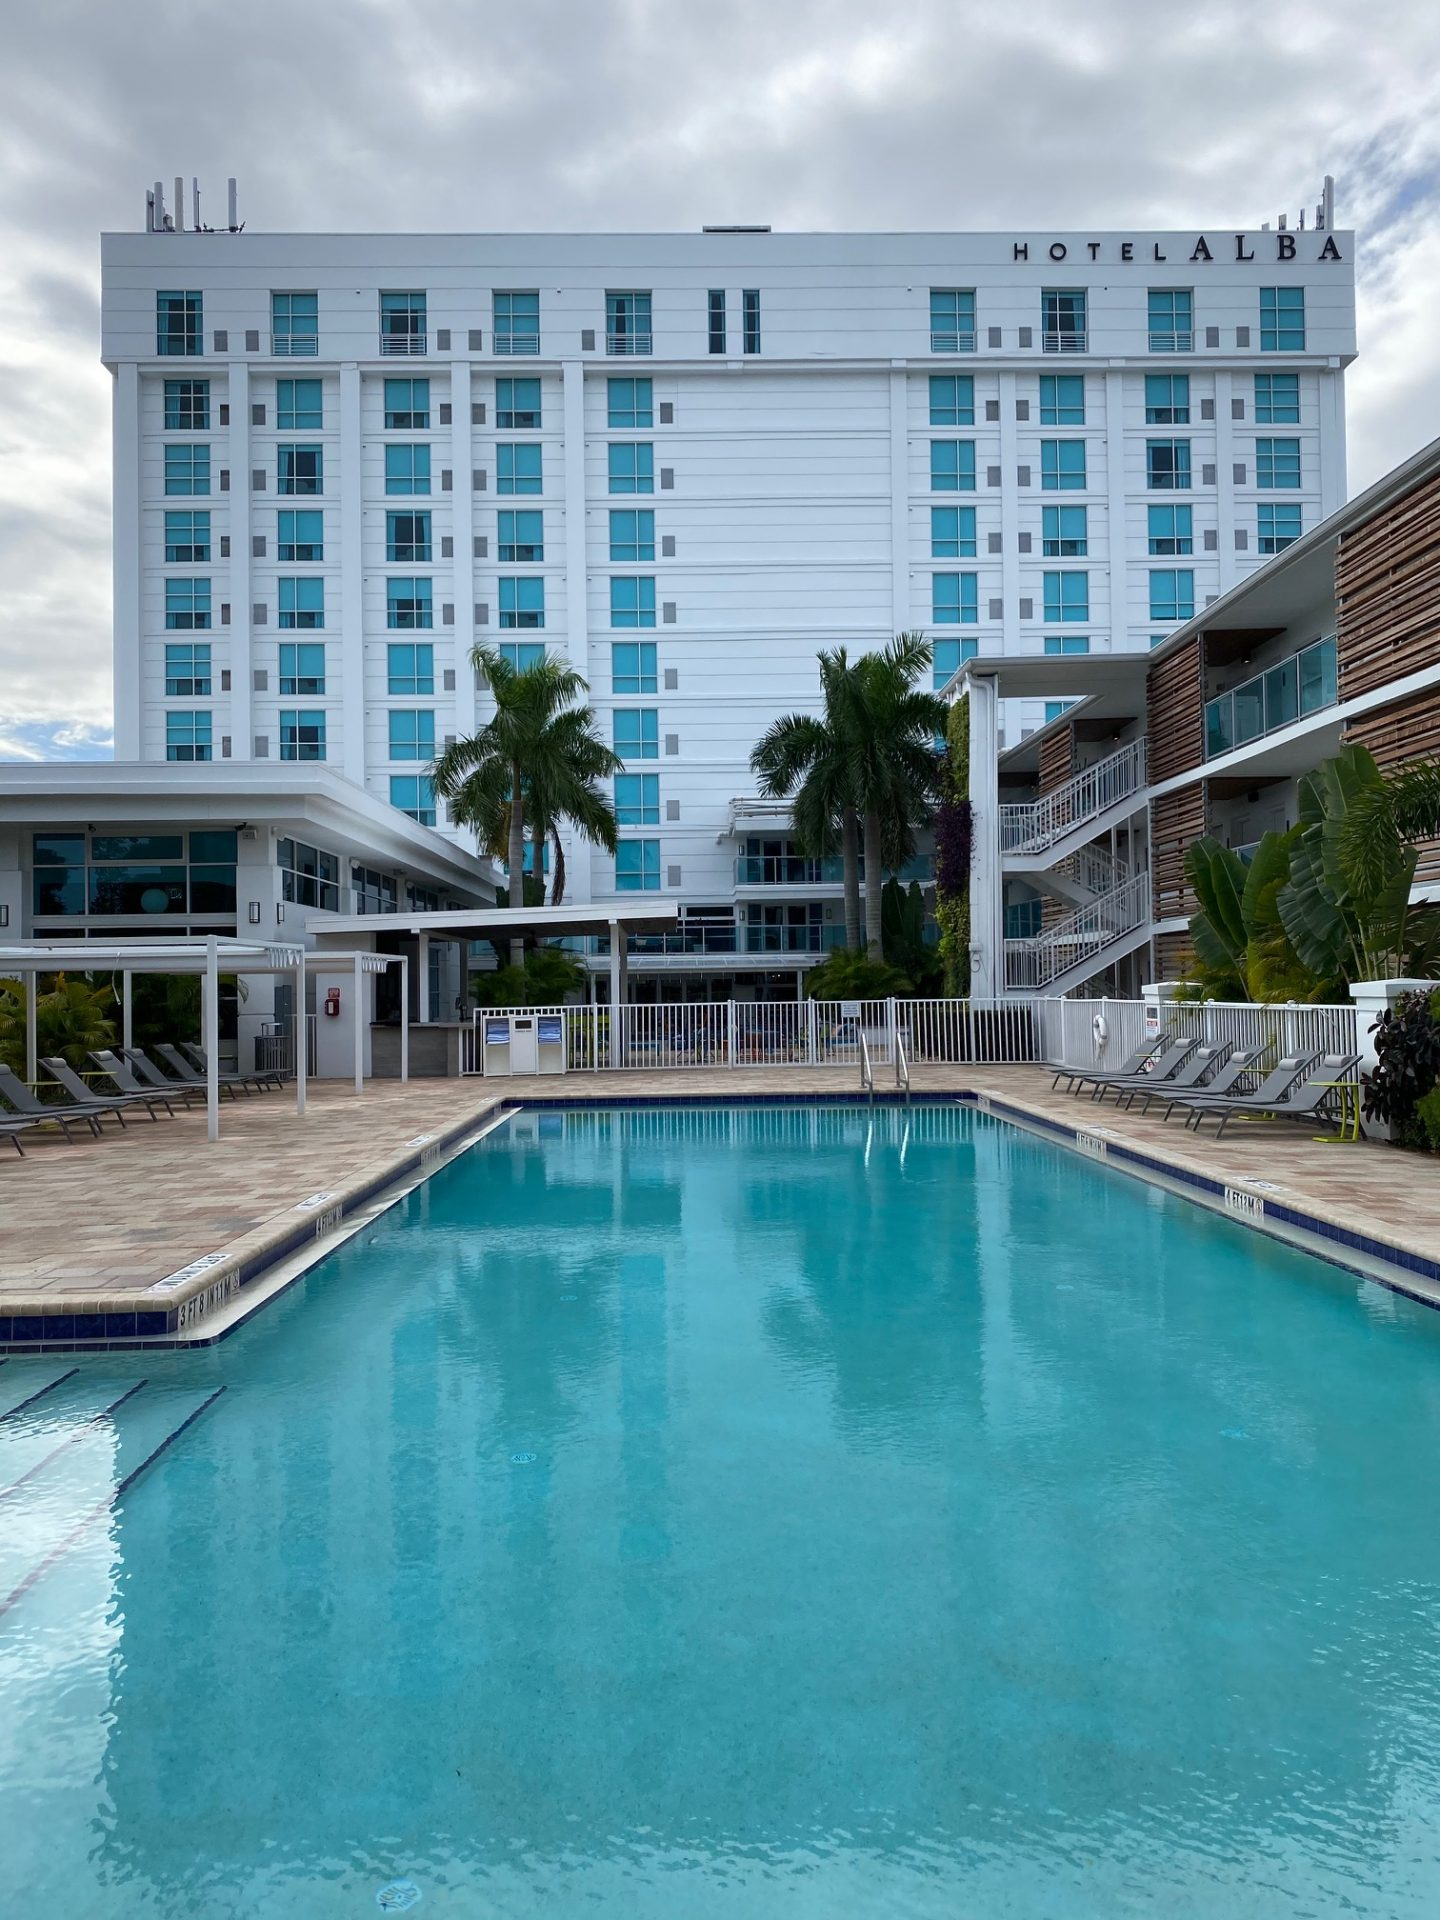 Where To Stay In Tampa, Florida